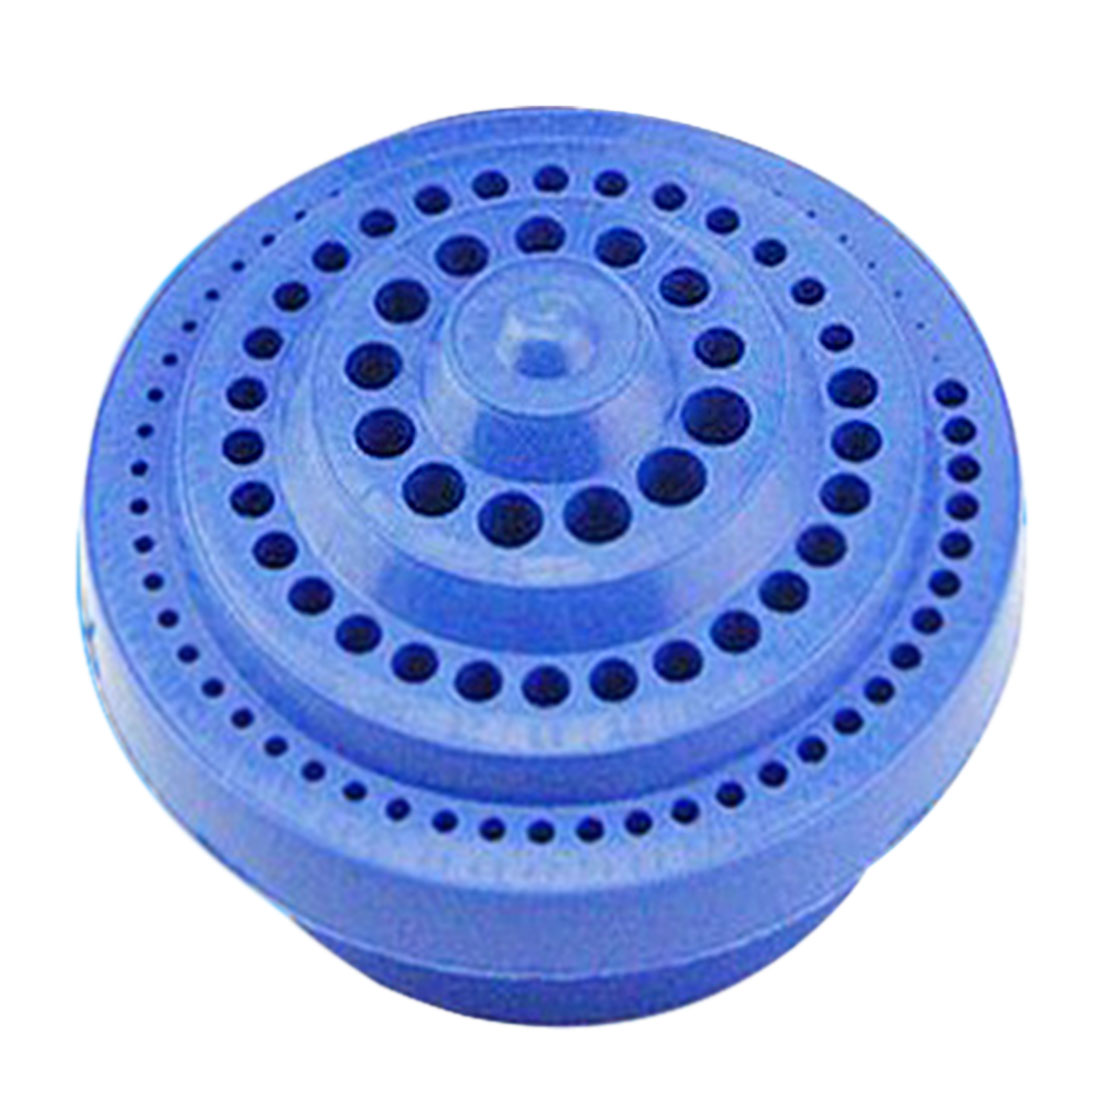 цены 1pcs Round Shape Plastic Hard 100pcs 1-13mm Drill Bit Storage Case Blue